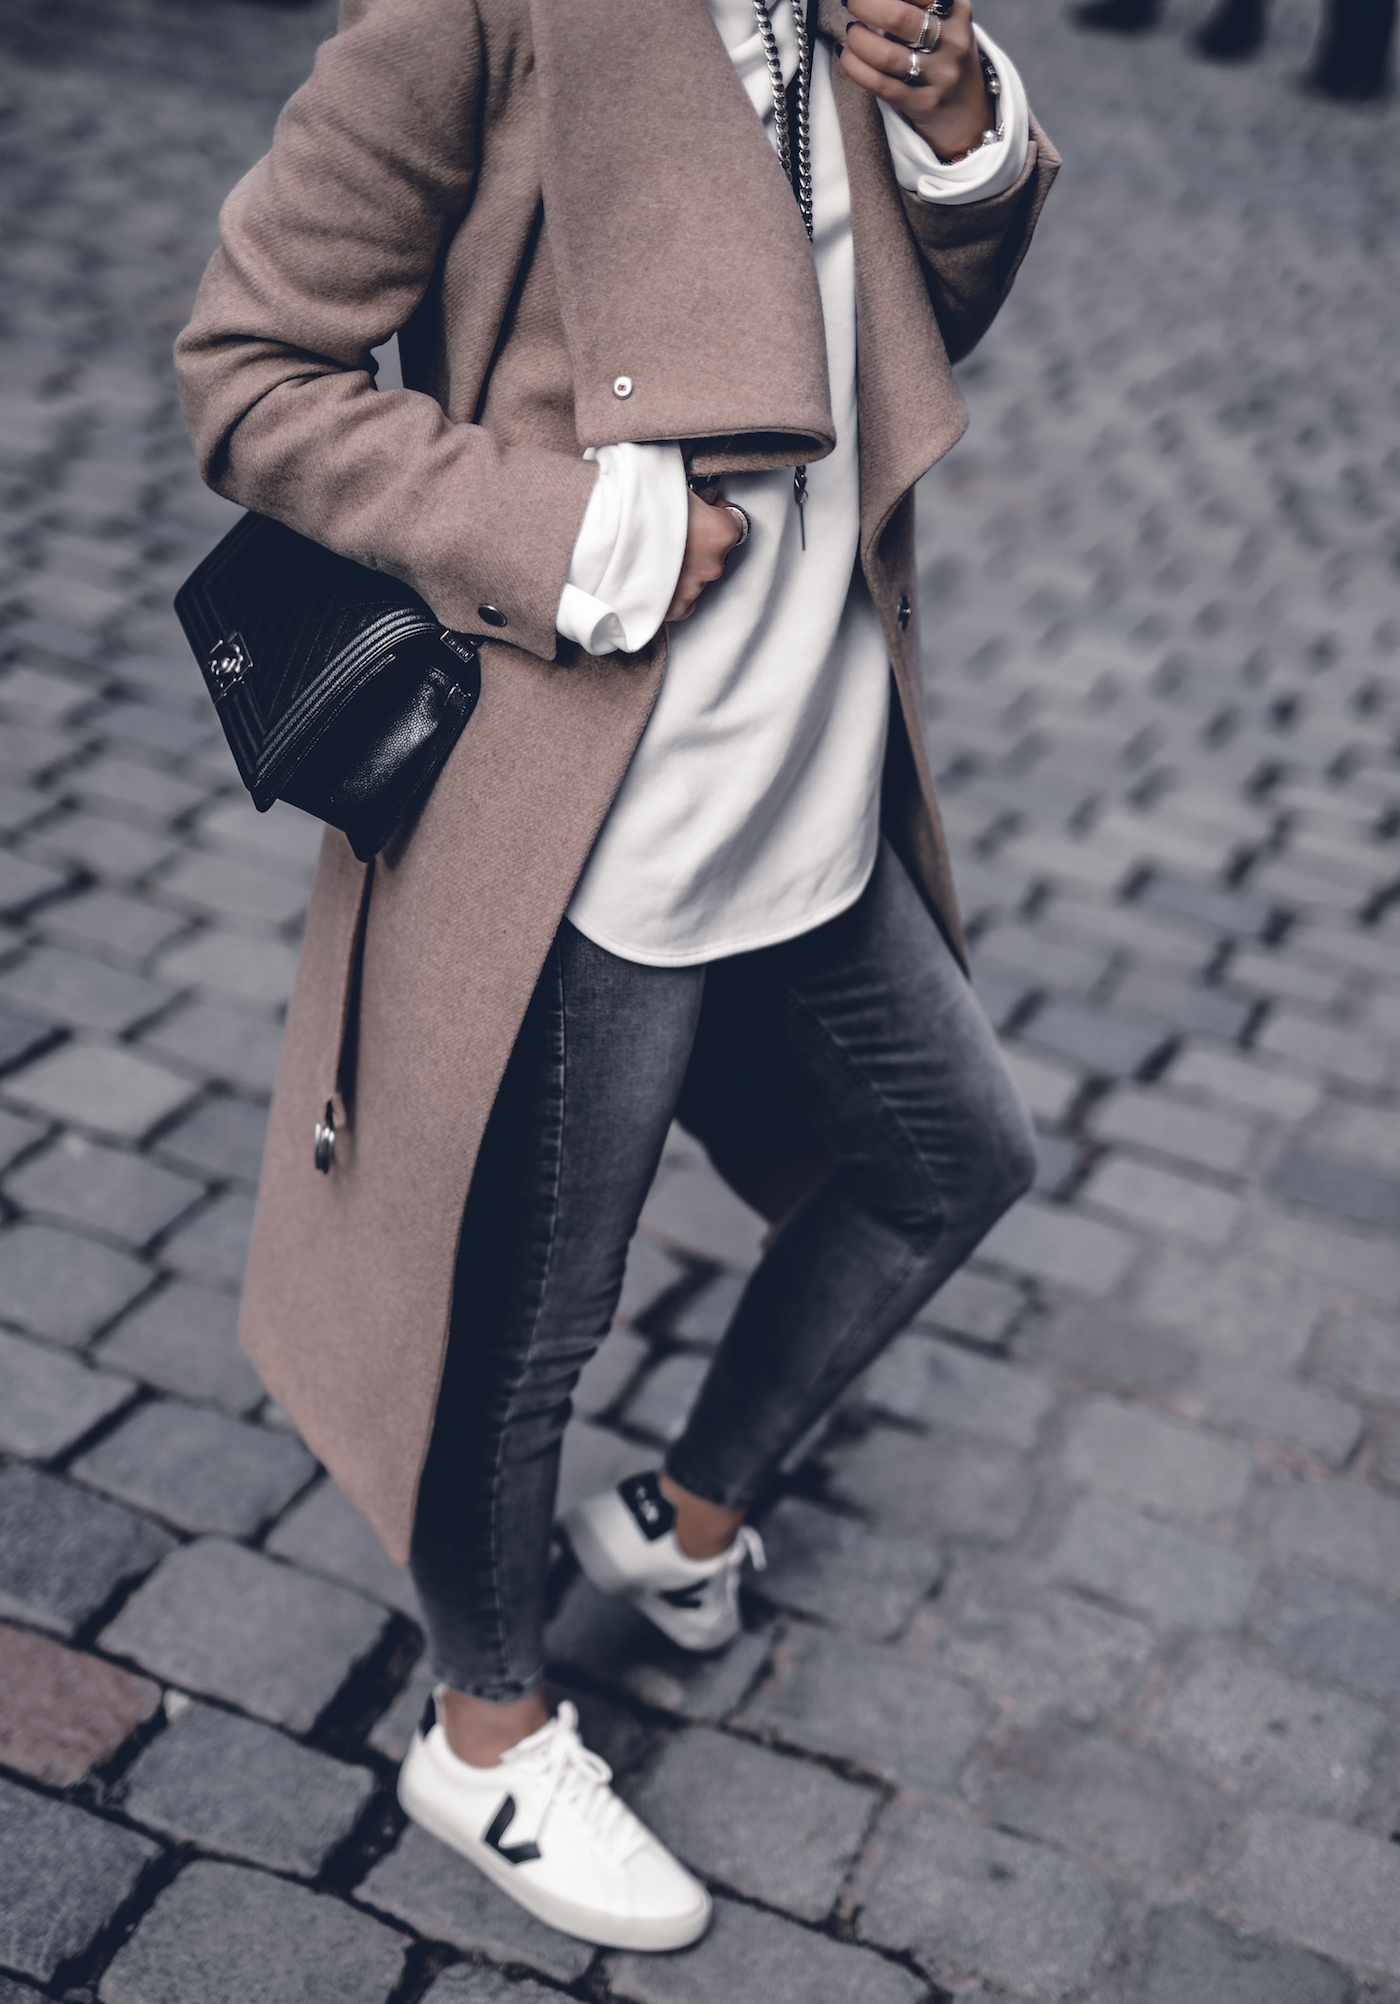 Fall Outfit 2017 Women Cute Preppy Edgy Classy Sweaters Street Styles, Camel Coat, Hoodie, Sneakers | seen on WantGetRepeat.com